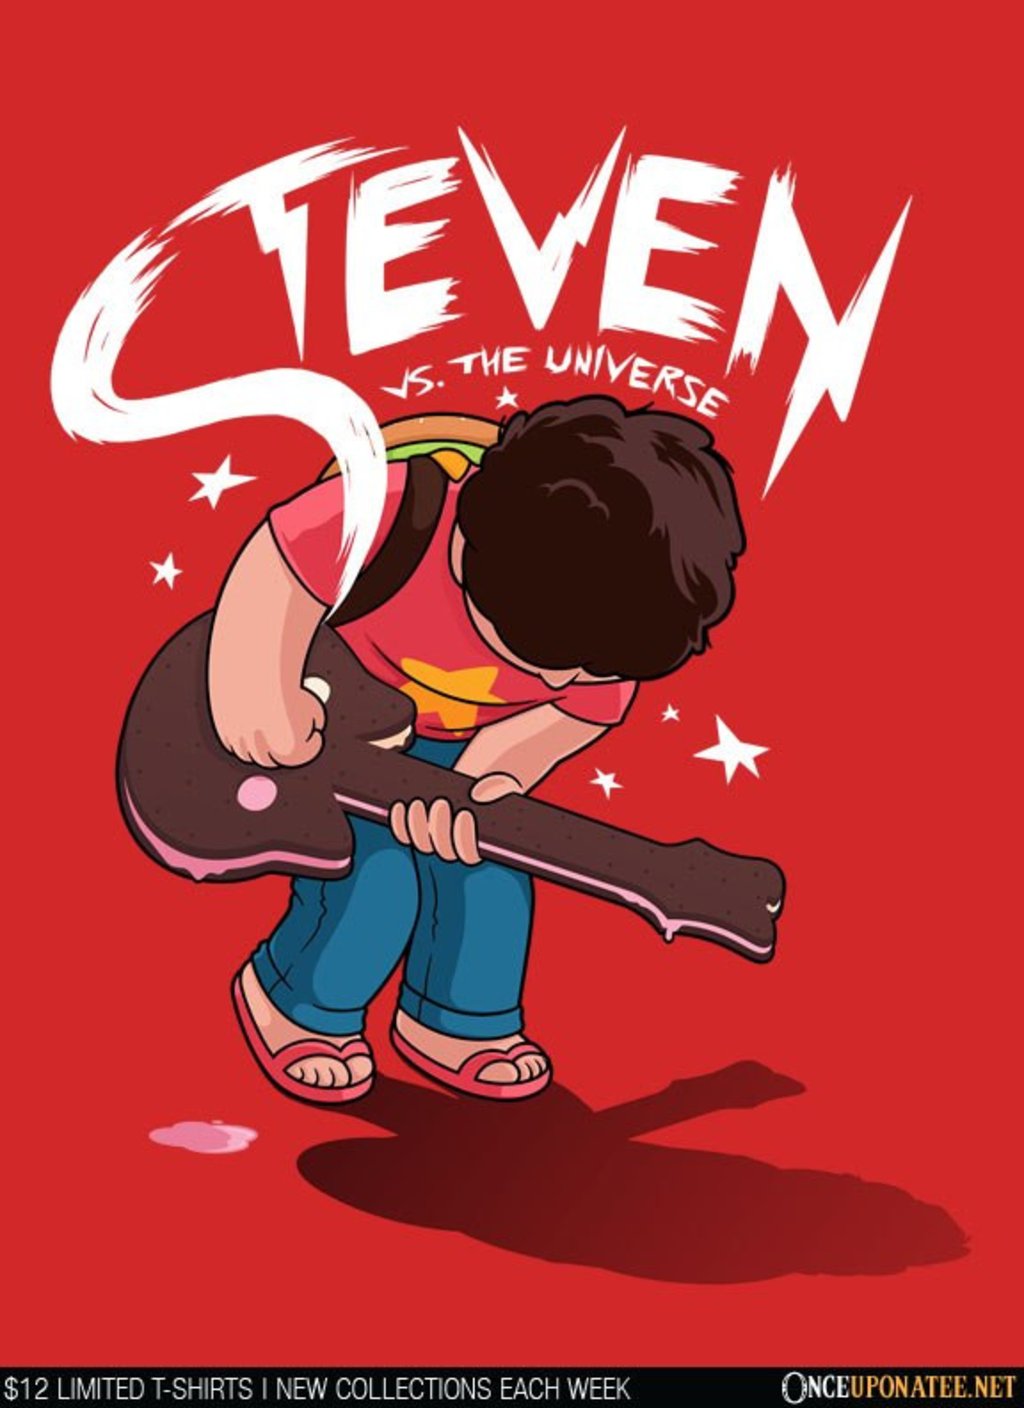 Once Upon a Tee: Steven vs. the Universe